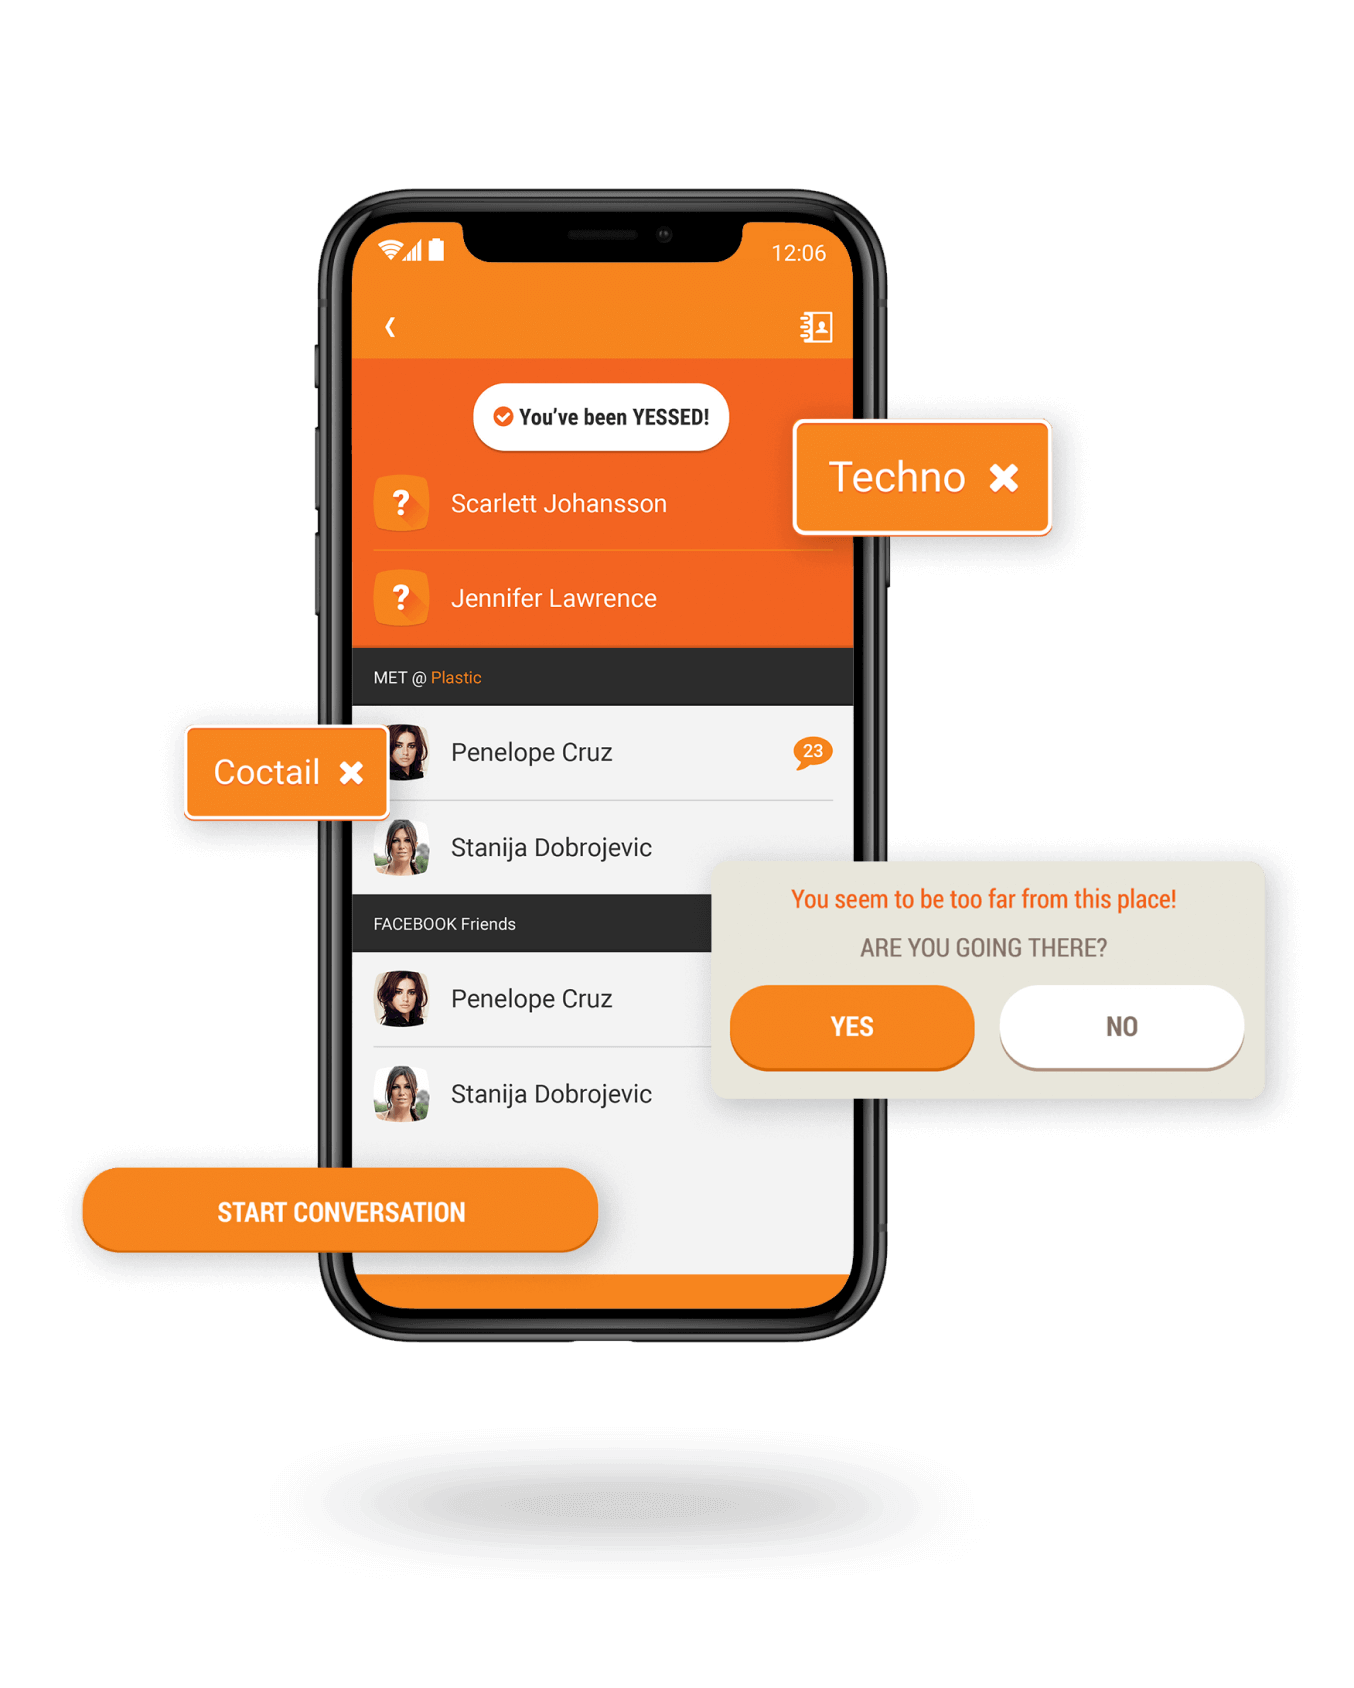 Location based Tinder like application overview